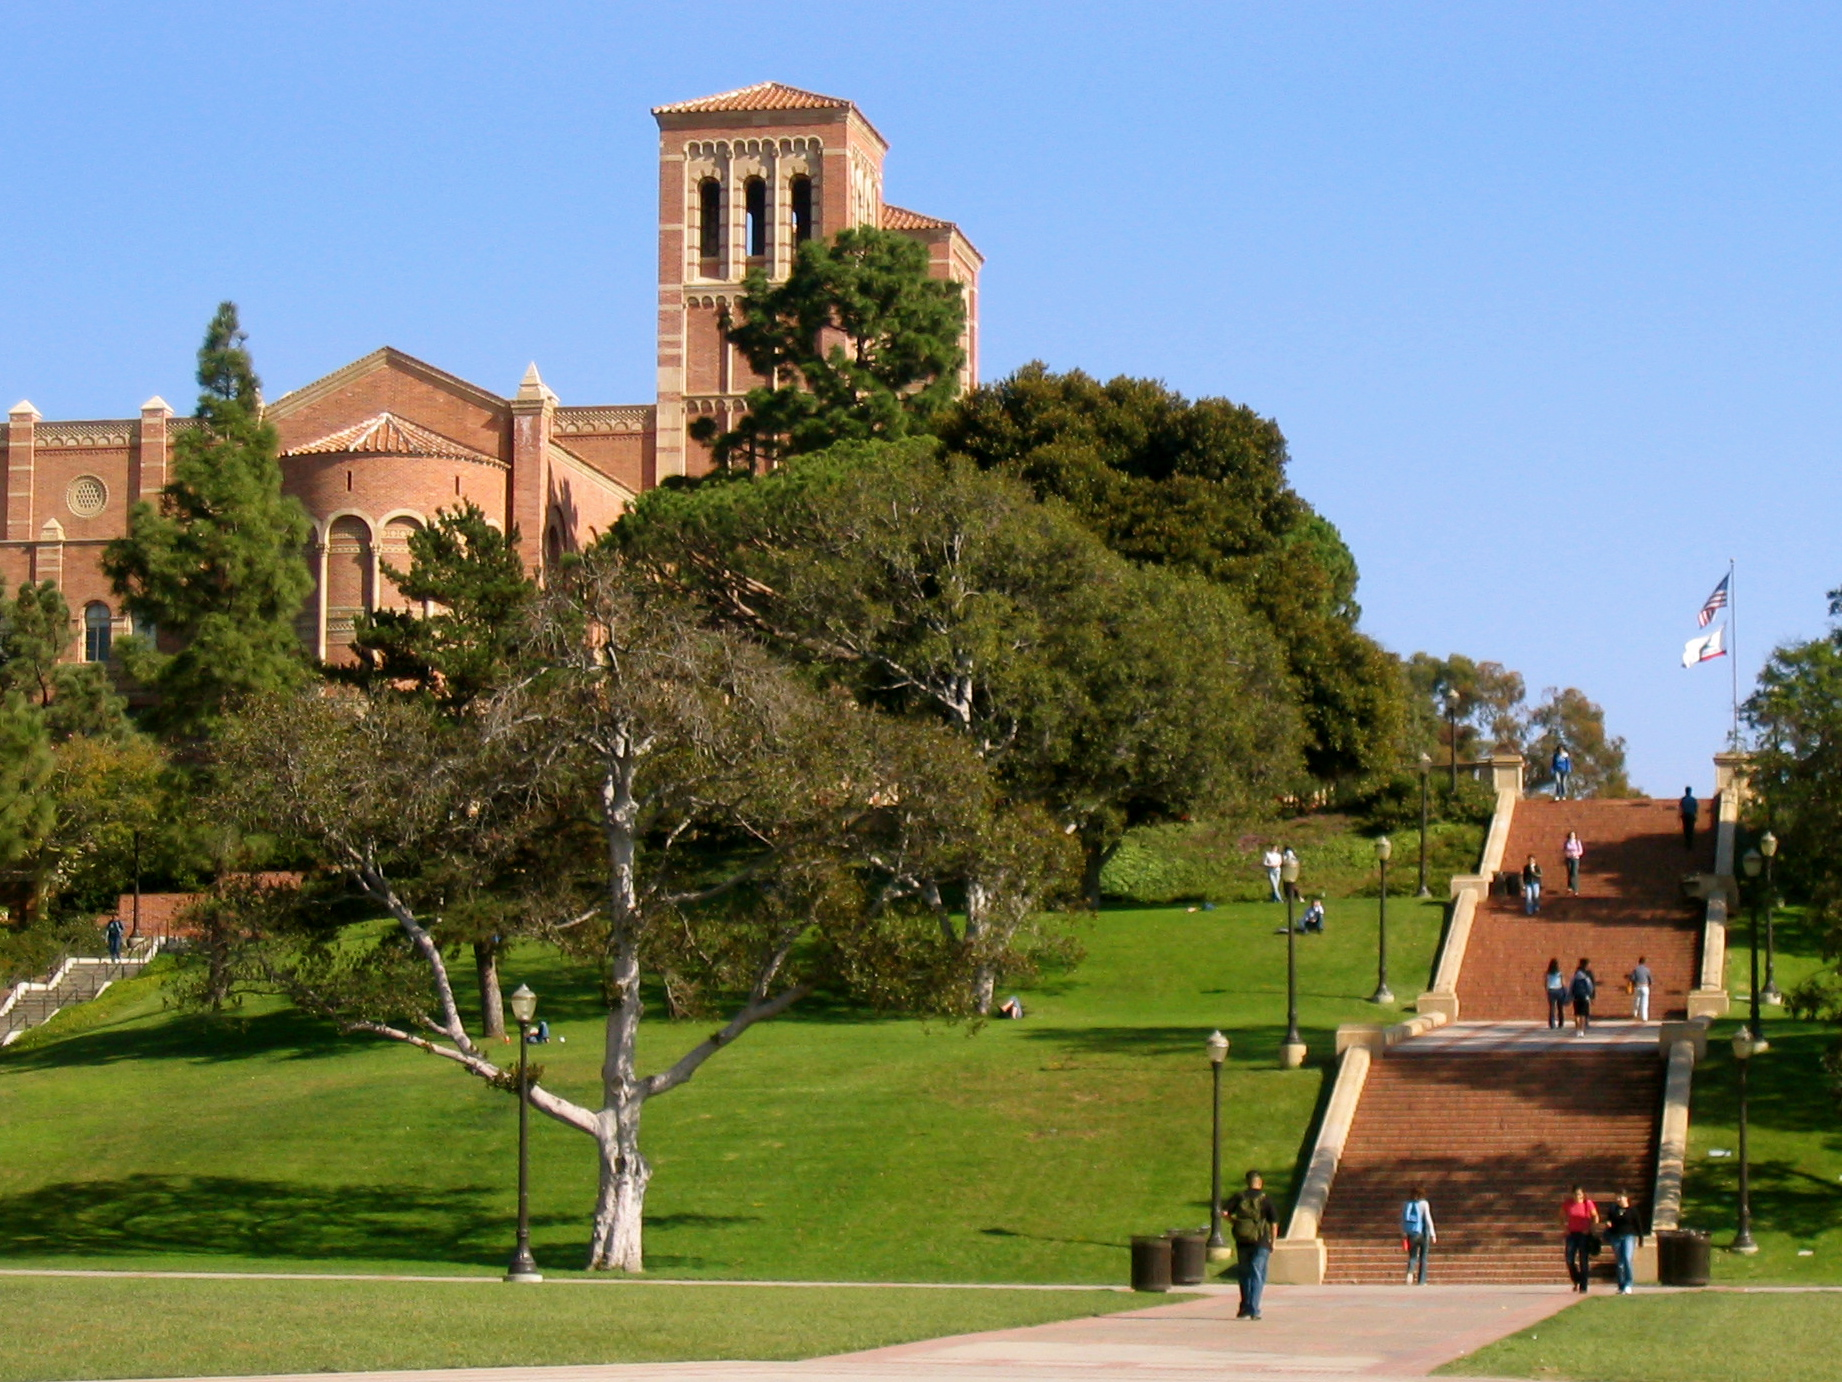 File:Janss Steps, Royce Hall In Background, UCLA